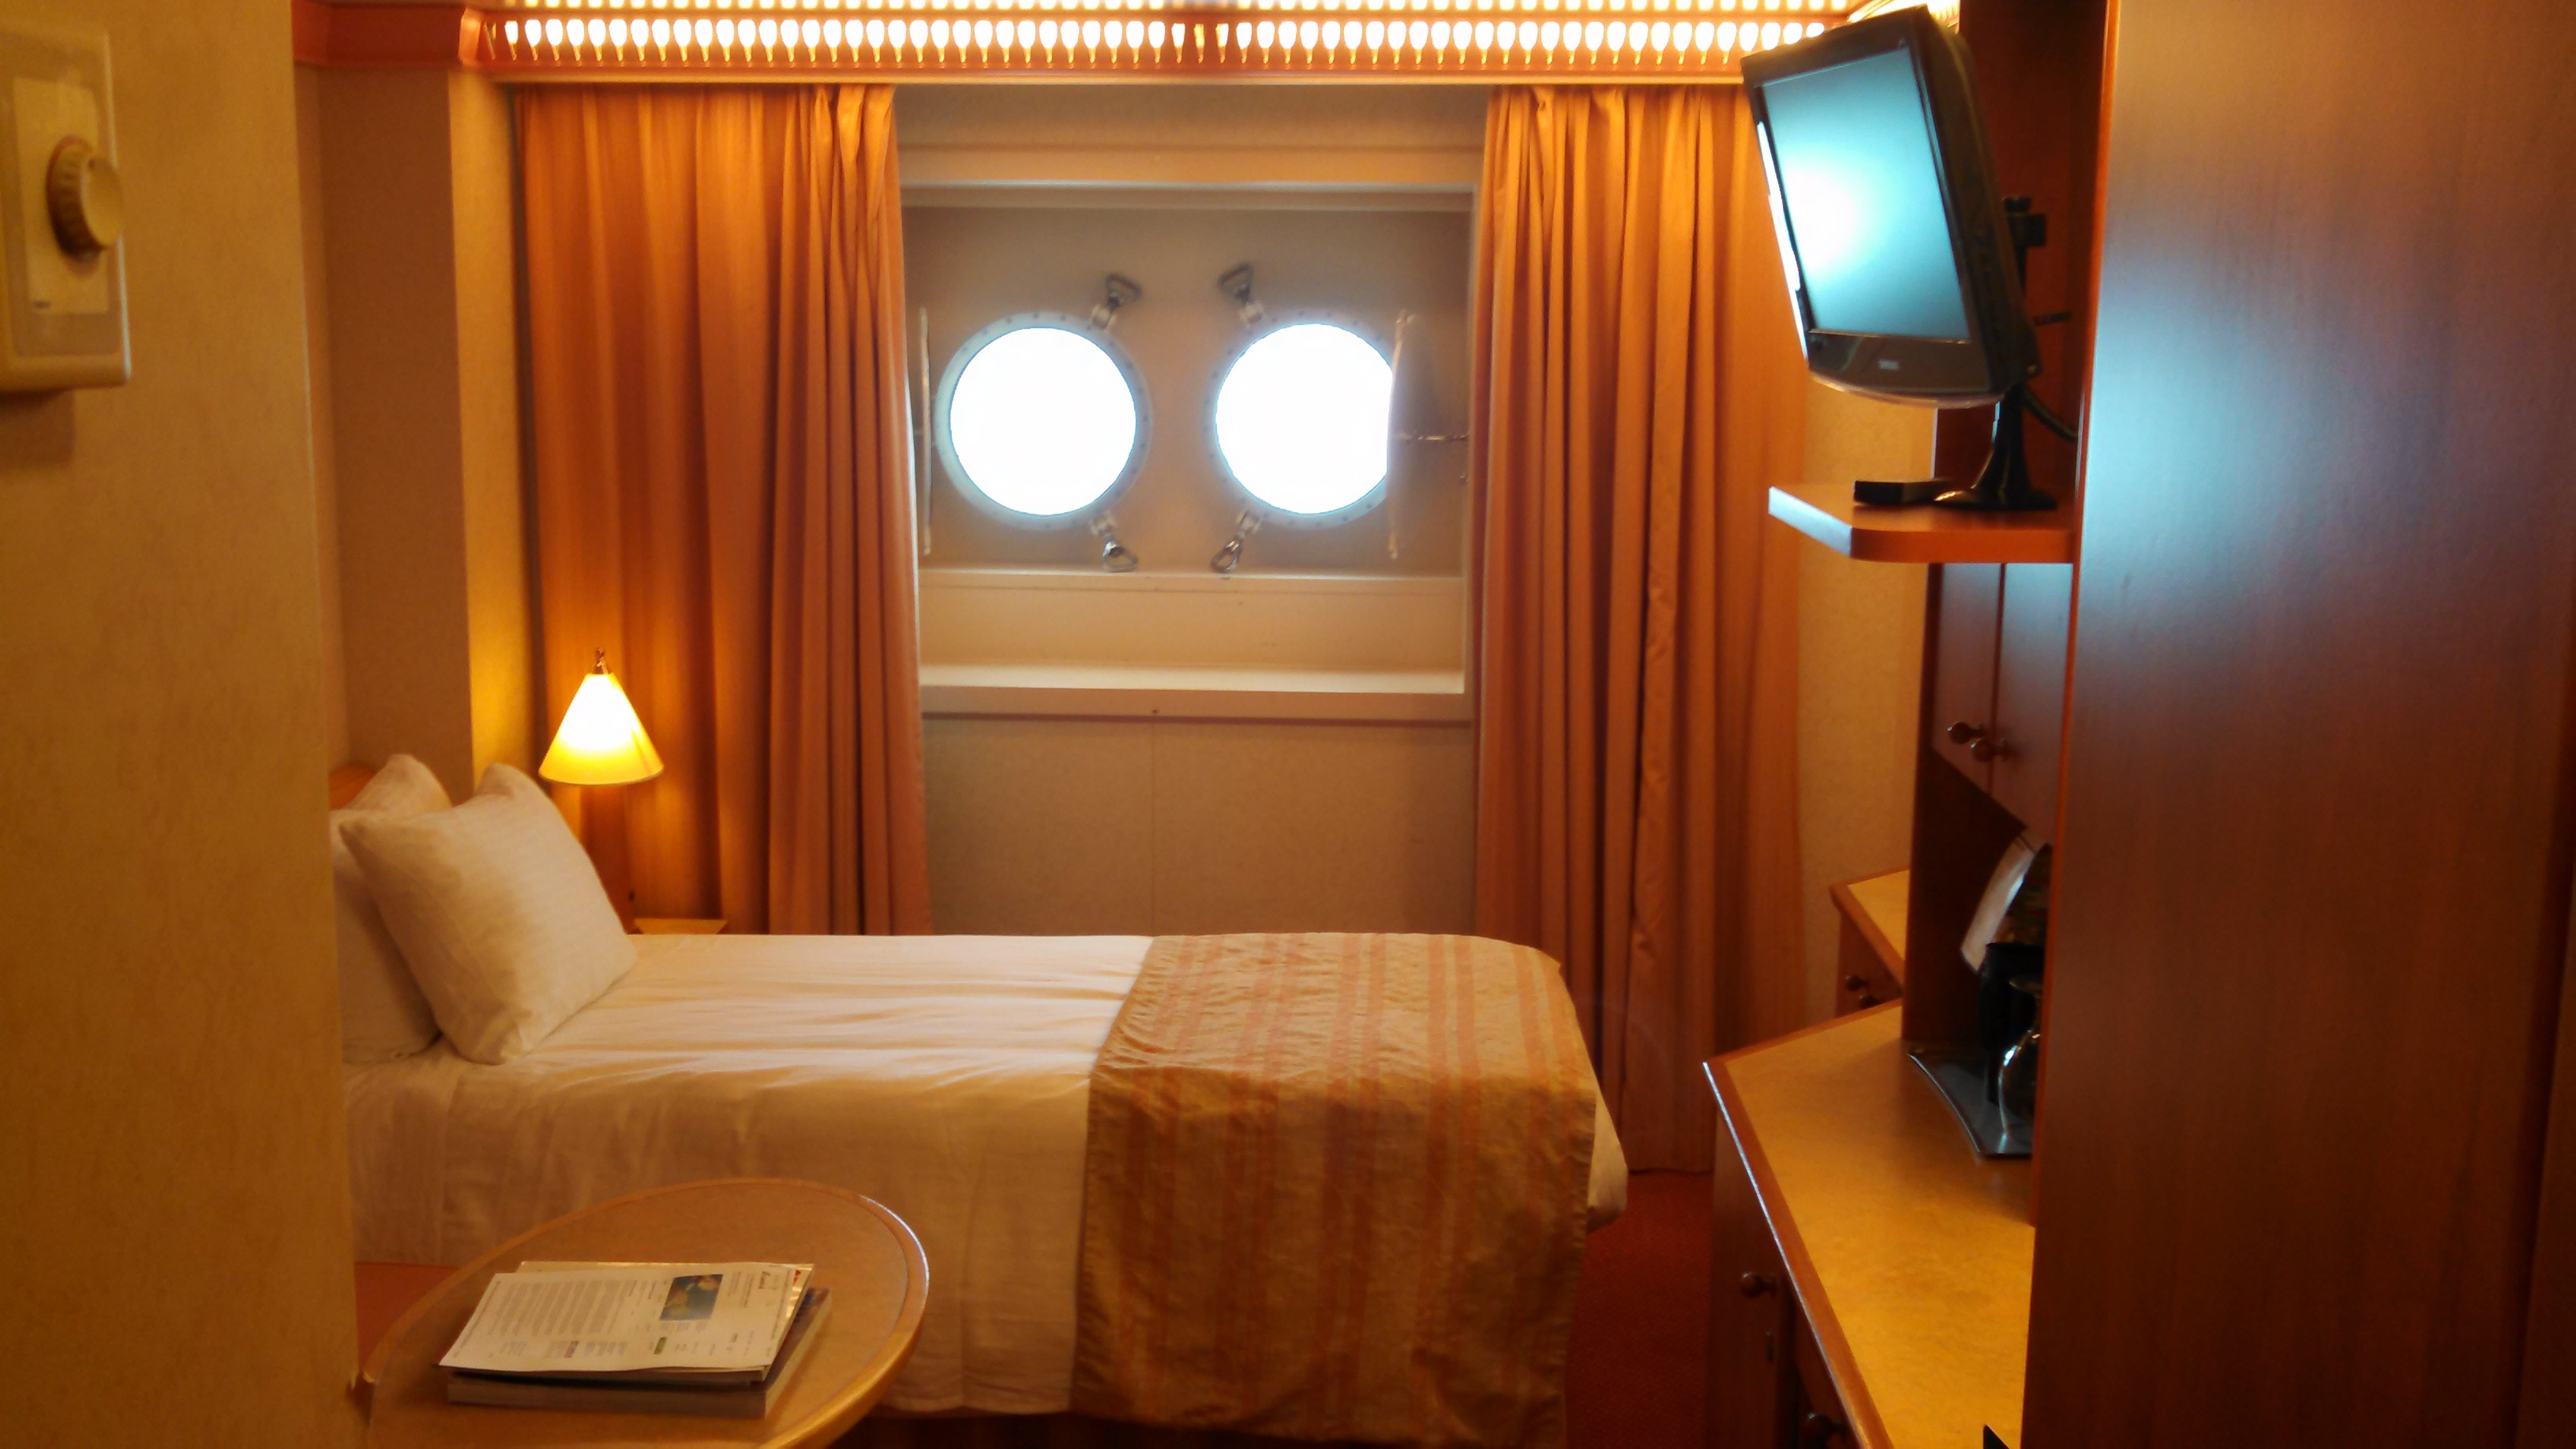 The Good, The Bad, The Ugly - Carnival Glory Cruise Review